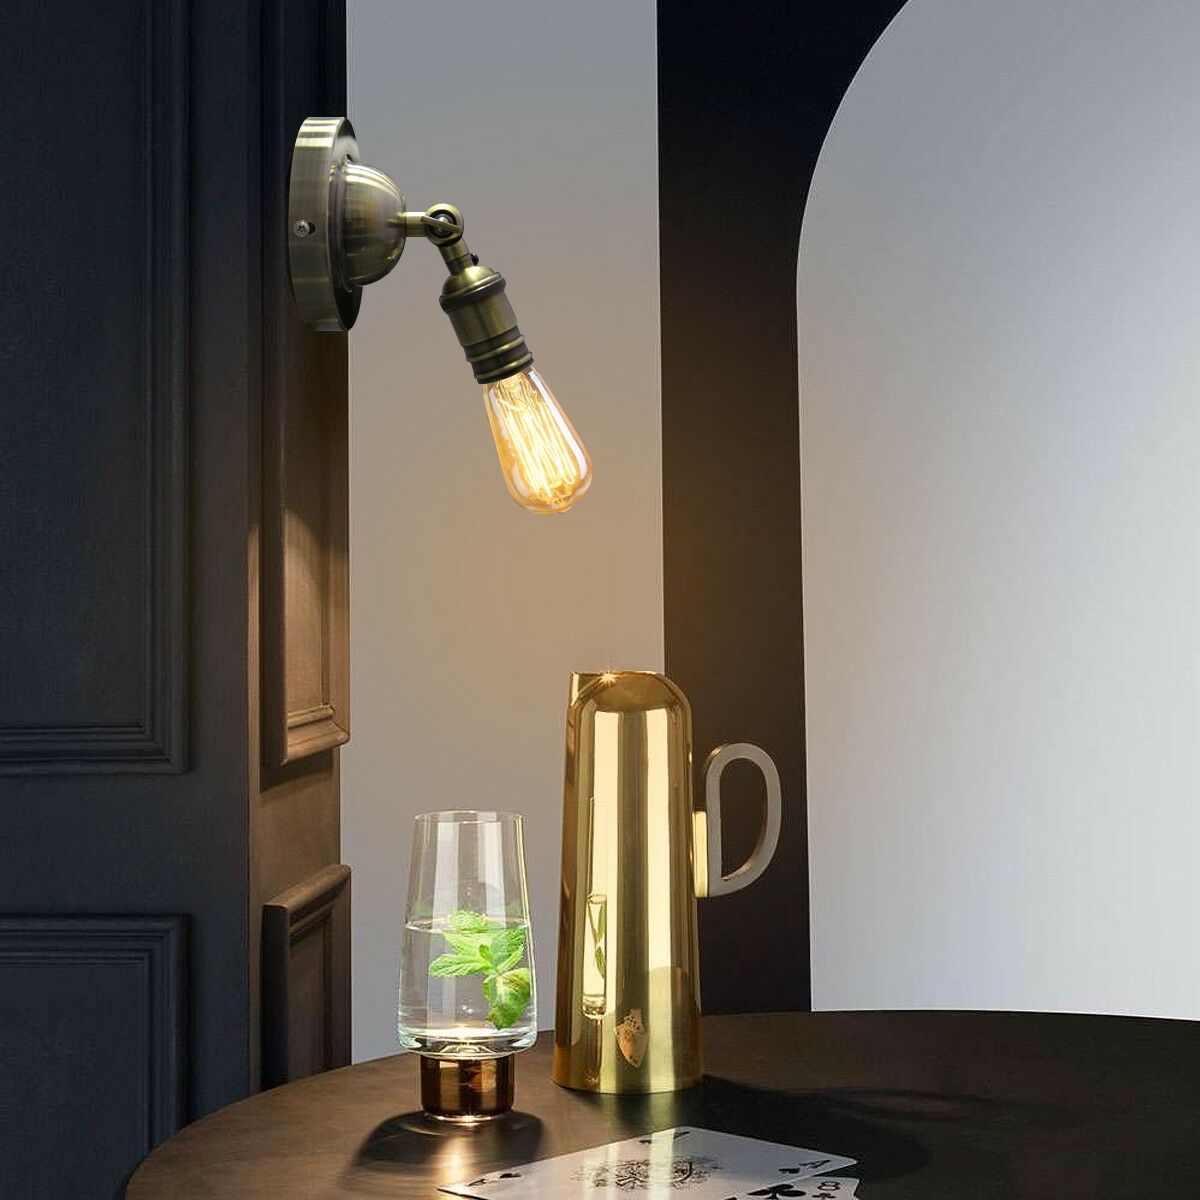 Wall Light Fixture With Switch: Retro Vintage Brass Wall Light Socket E27 Sconce Lamp